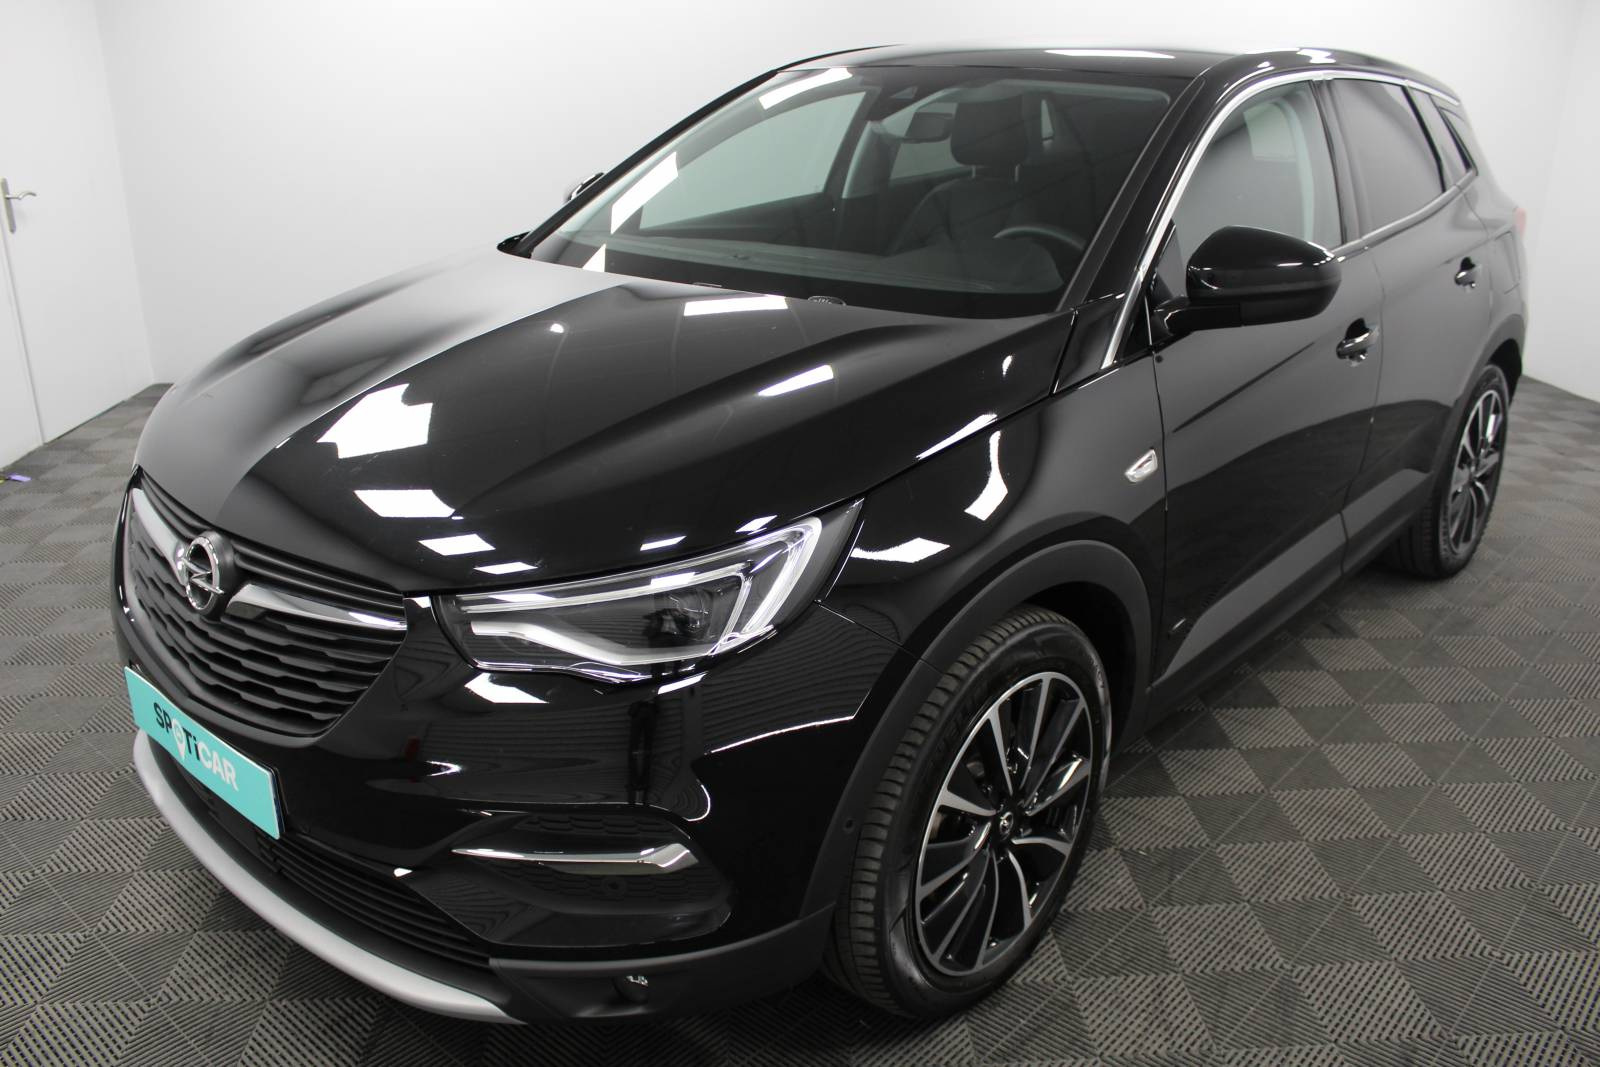 OPEL Grandland X Hybrid4 300 ch AWD BVA8 - véhicule d'occasion - Site Internet Faurie - Opel - Faurie Motor Charente Angouleme - 16160 - Gond-Pontouvre - 1